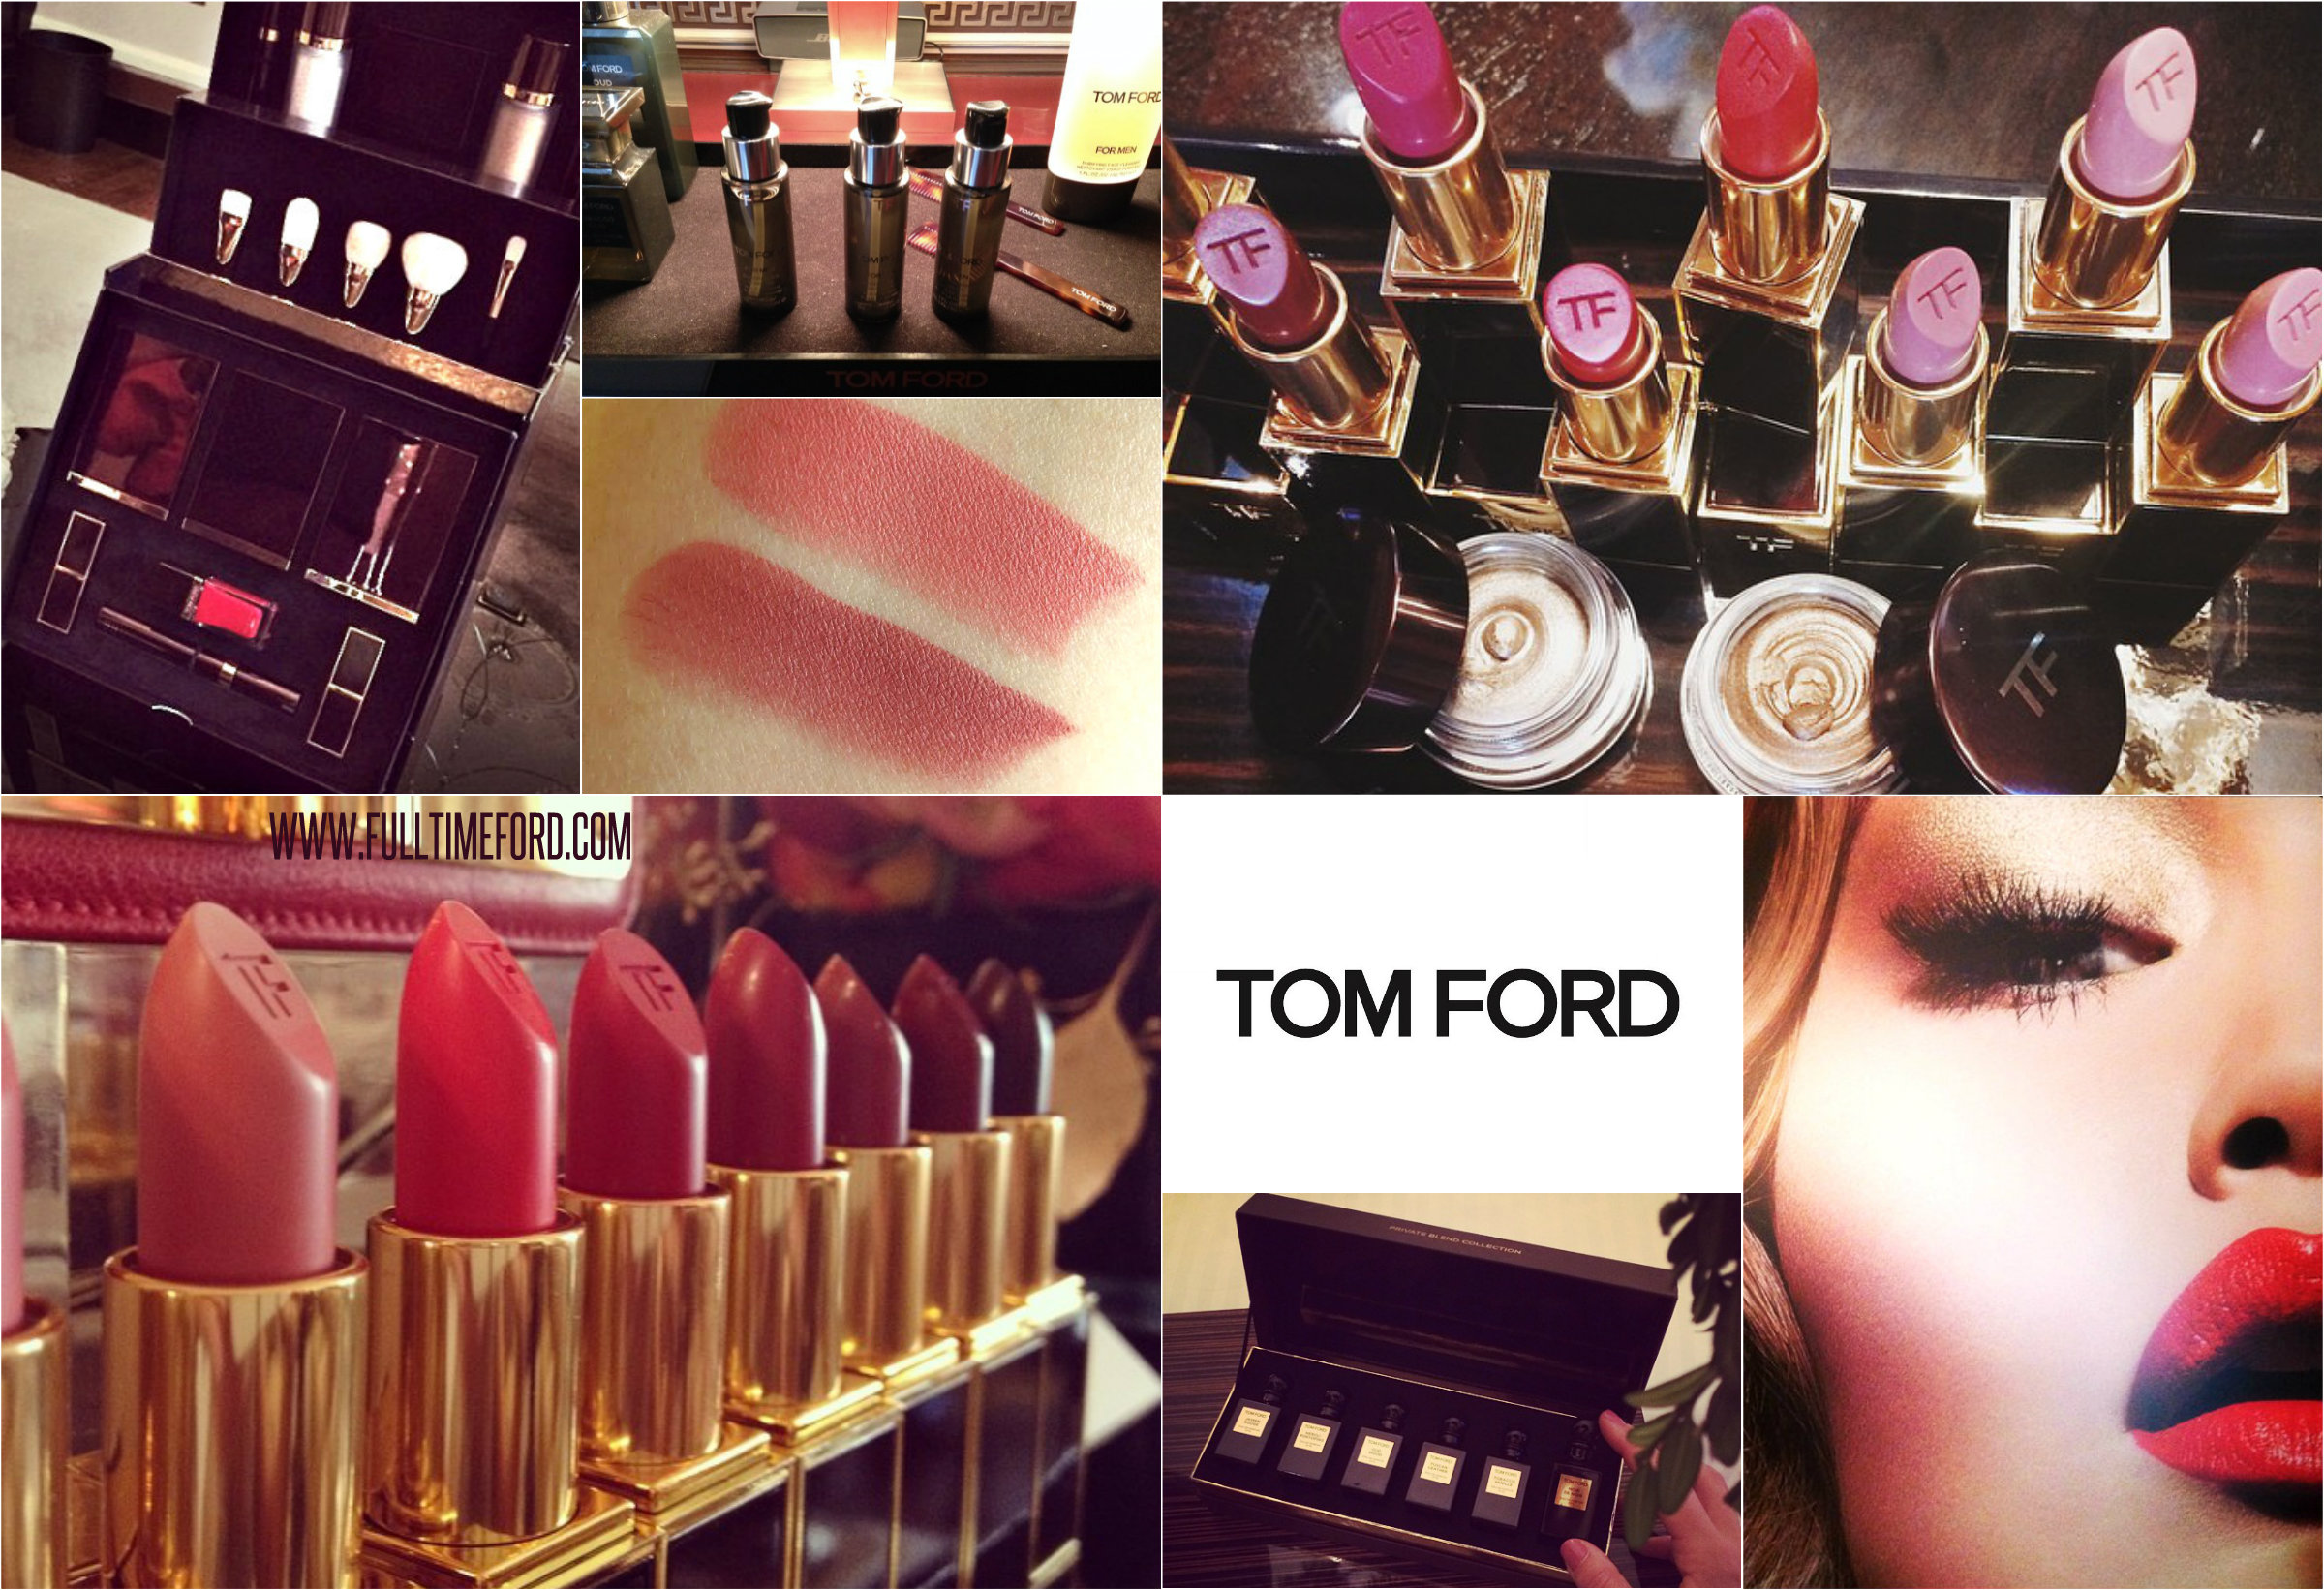 SNEAK PREVIEW: TOM FORD BEAUTY 2014 HOLIDAY COLLECTION [INFO & IMAGES] featured image